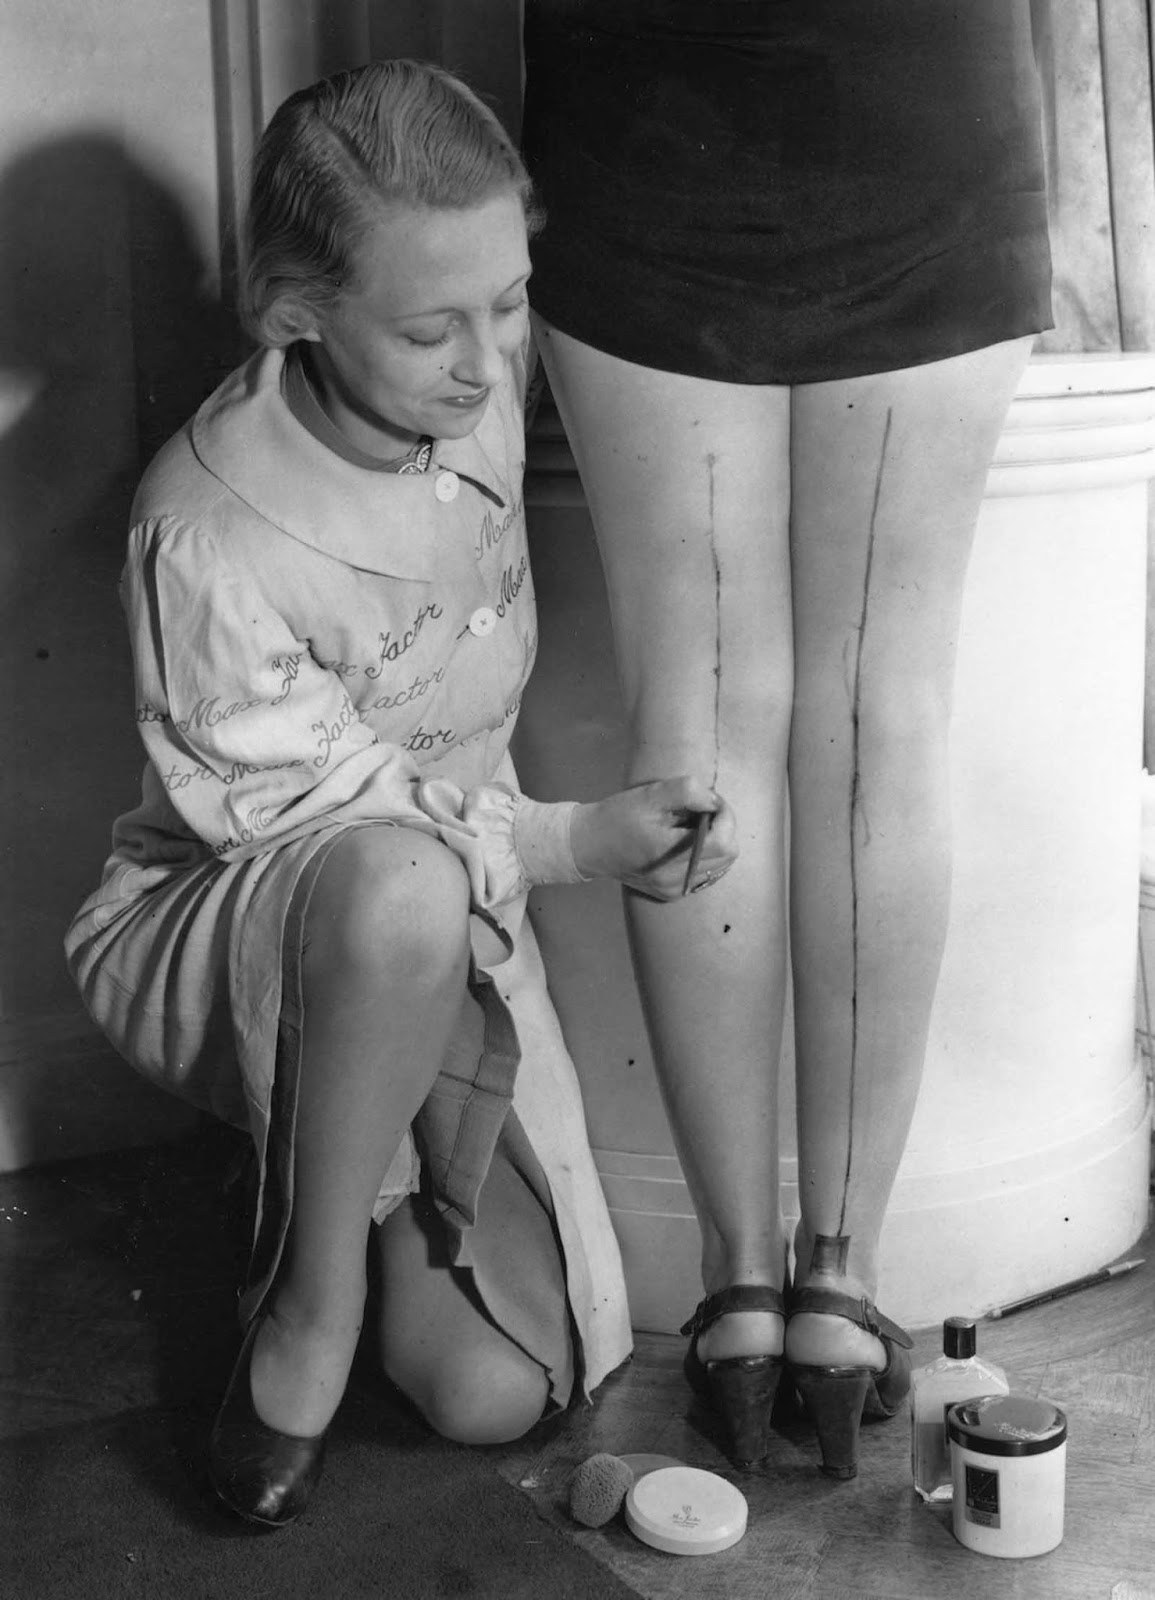 A representative of Max Factor paints cream stockings onto a woman's leg as a solution to the unavailability of stockings during the war.